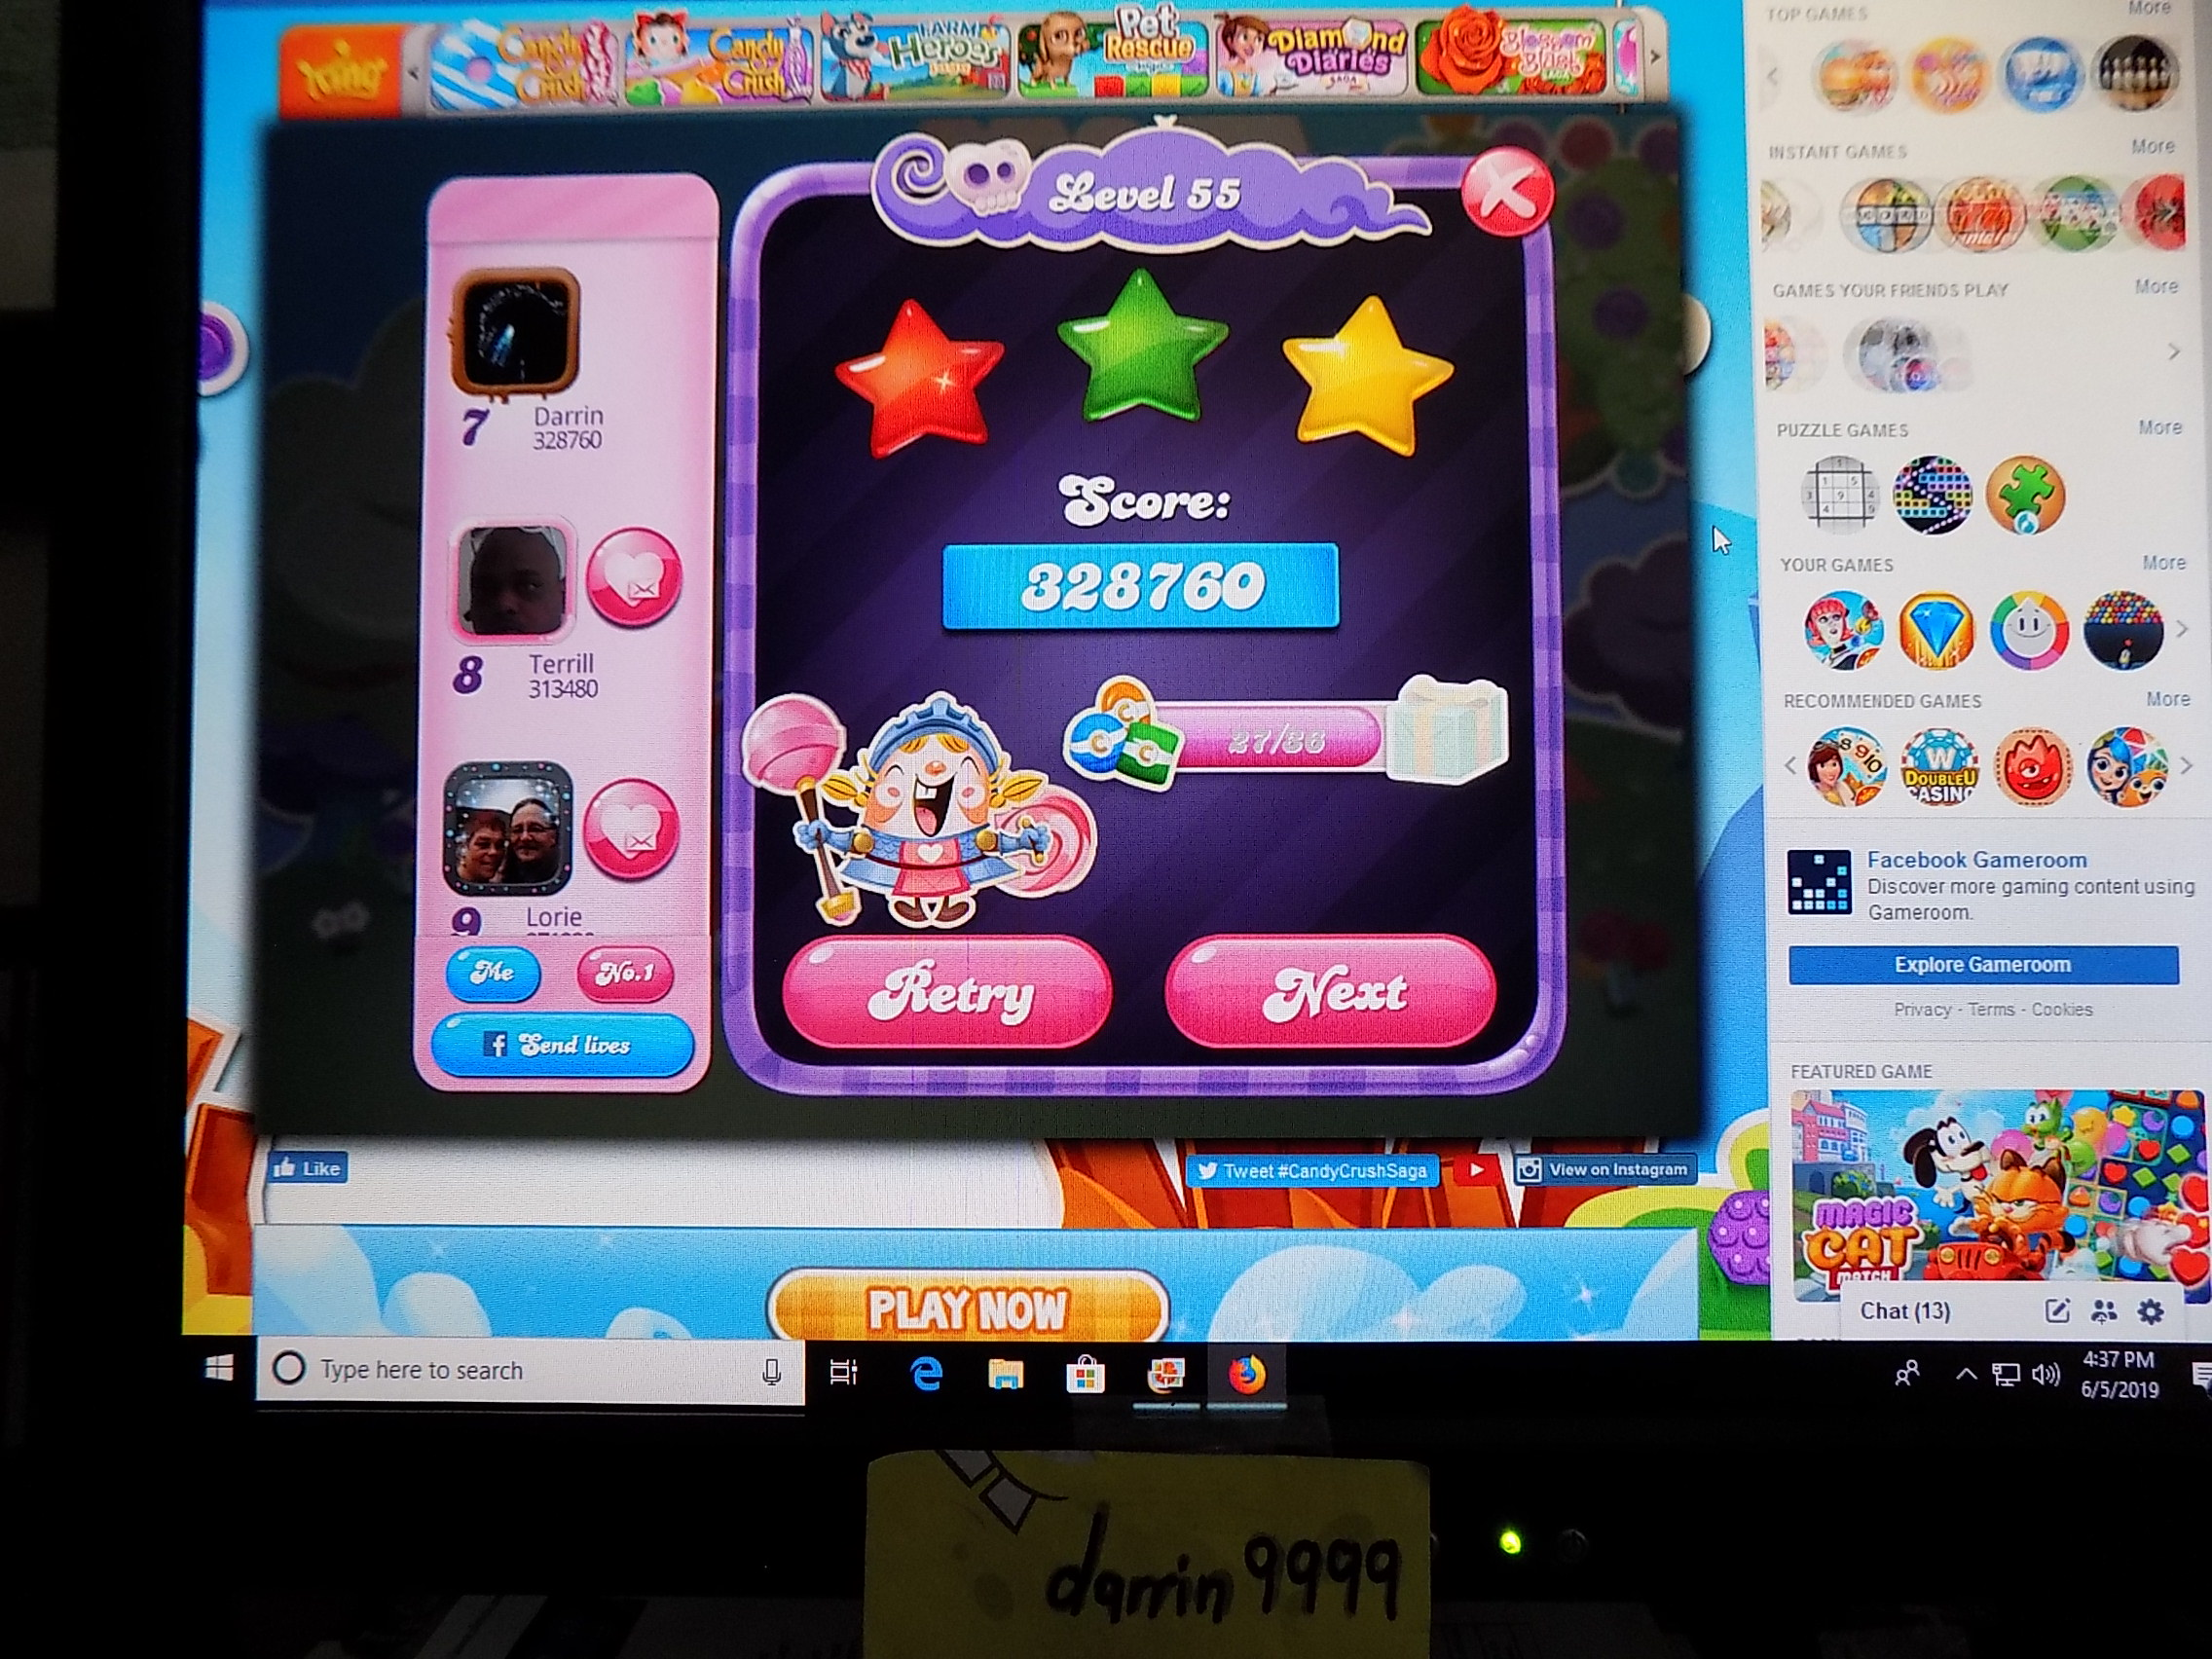 darrin9999: Candy Crush Saga: Level 055 (Web) 328,760 points on 2019-06-12 16:03:01